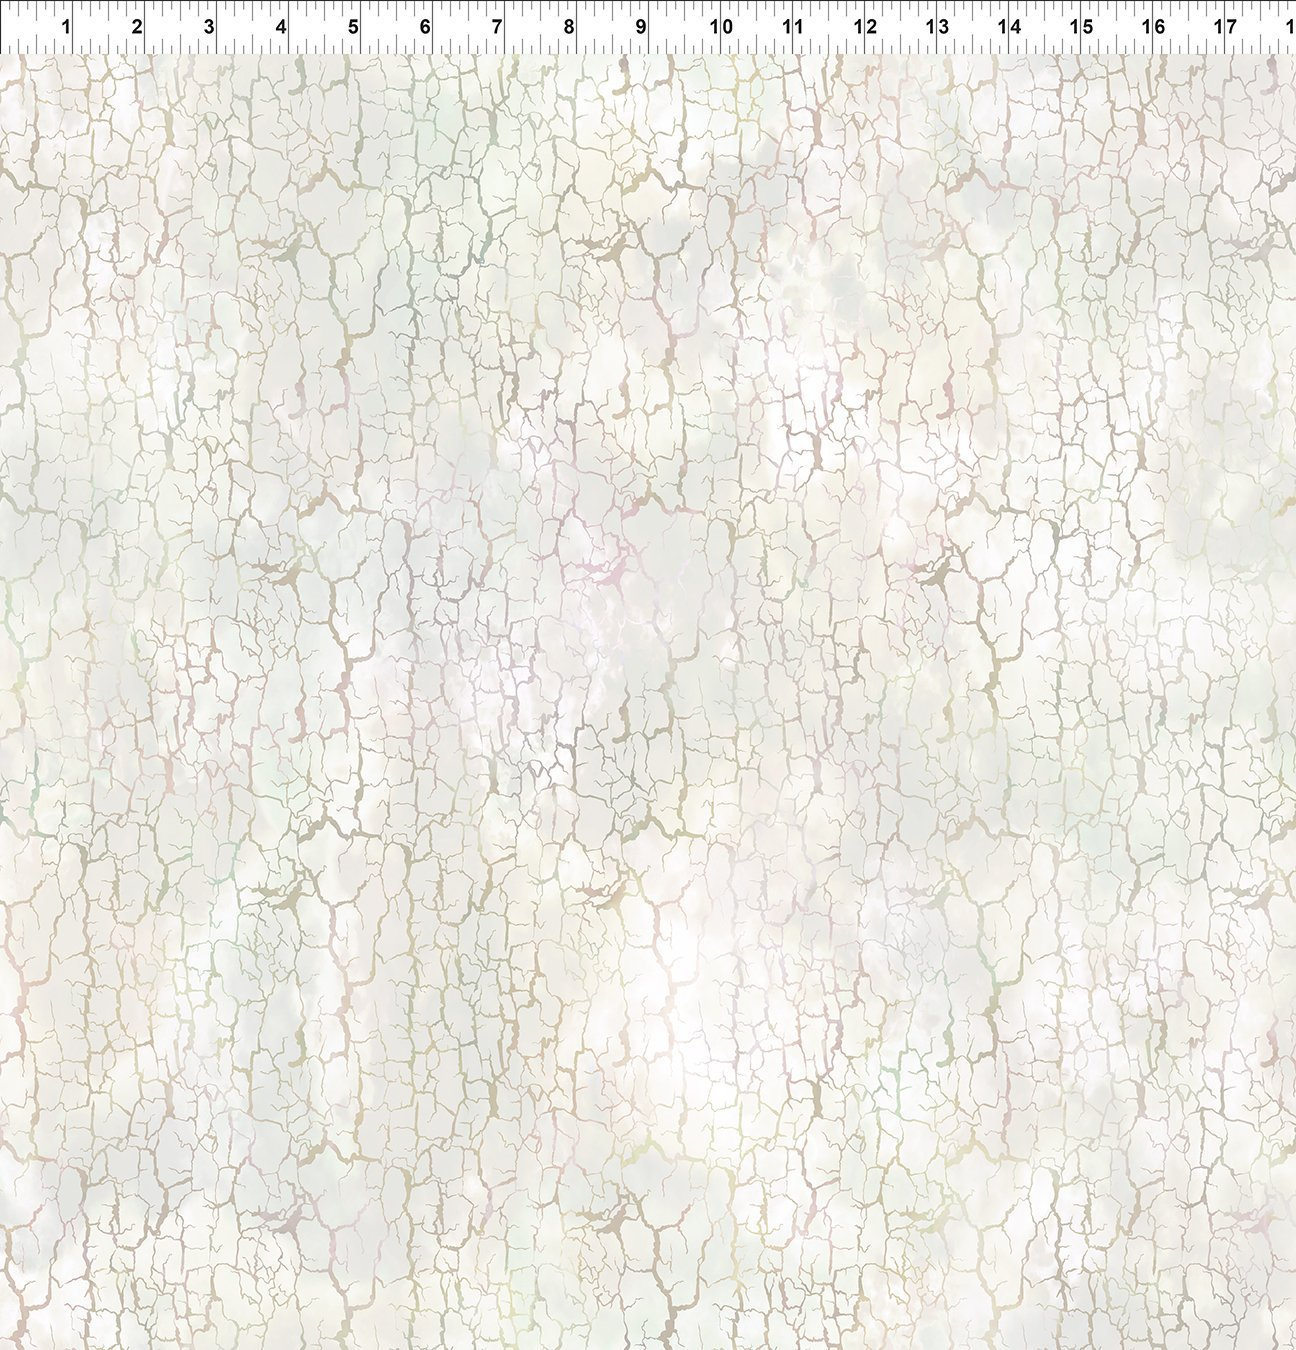 9HVN-1 Haven - Crackle - Cream by Jason Yenter for In The Beginning Fabric